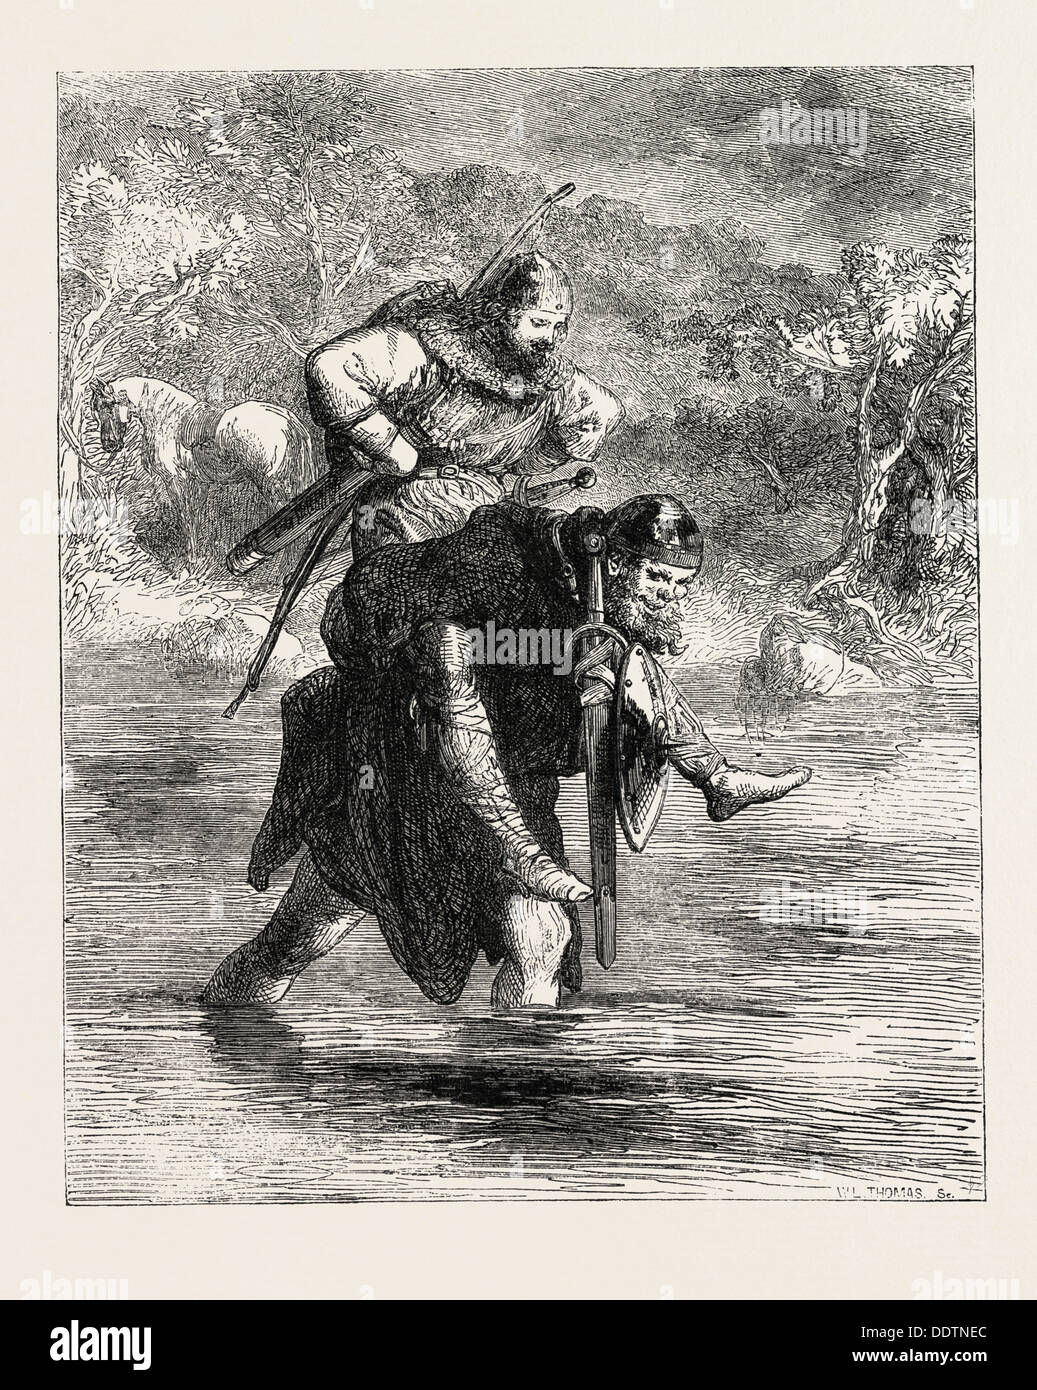 ROBIN HOOD AND THE CURTAL FRIAR, FROM THE BOY'S BOOK OF BALLADS, 1860 engraving - Stock Image